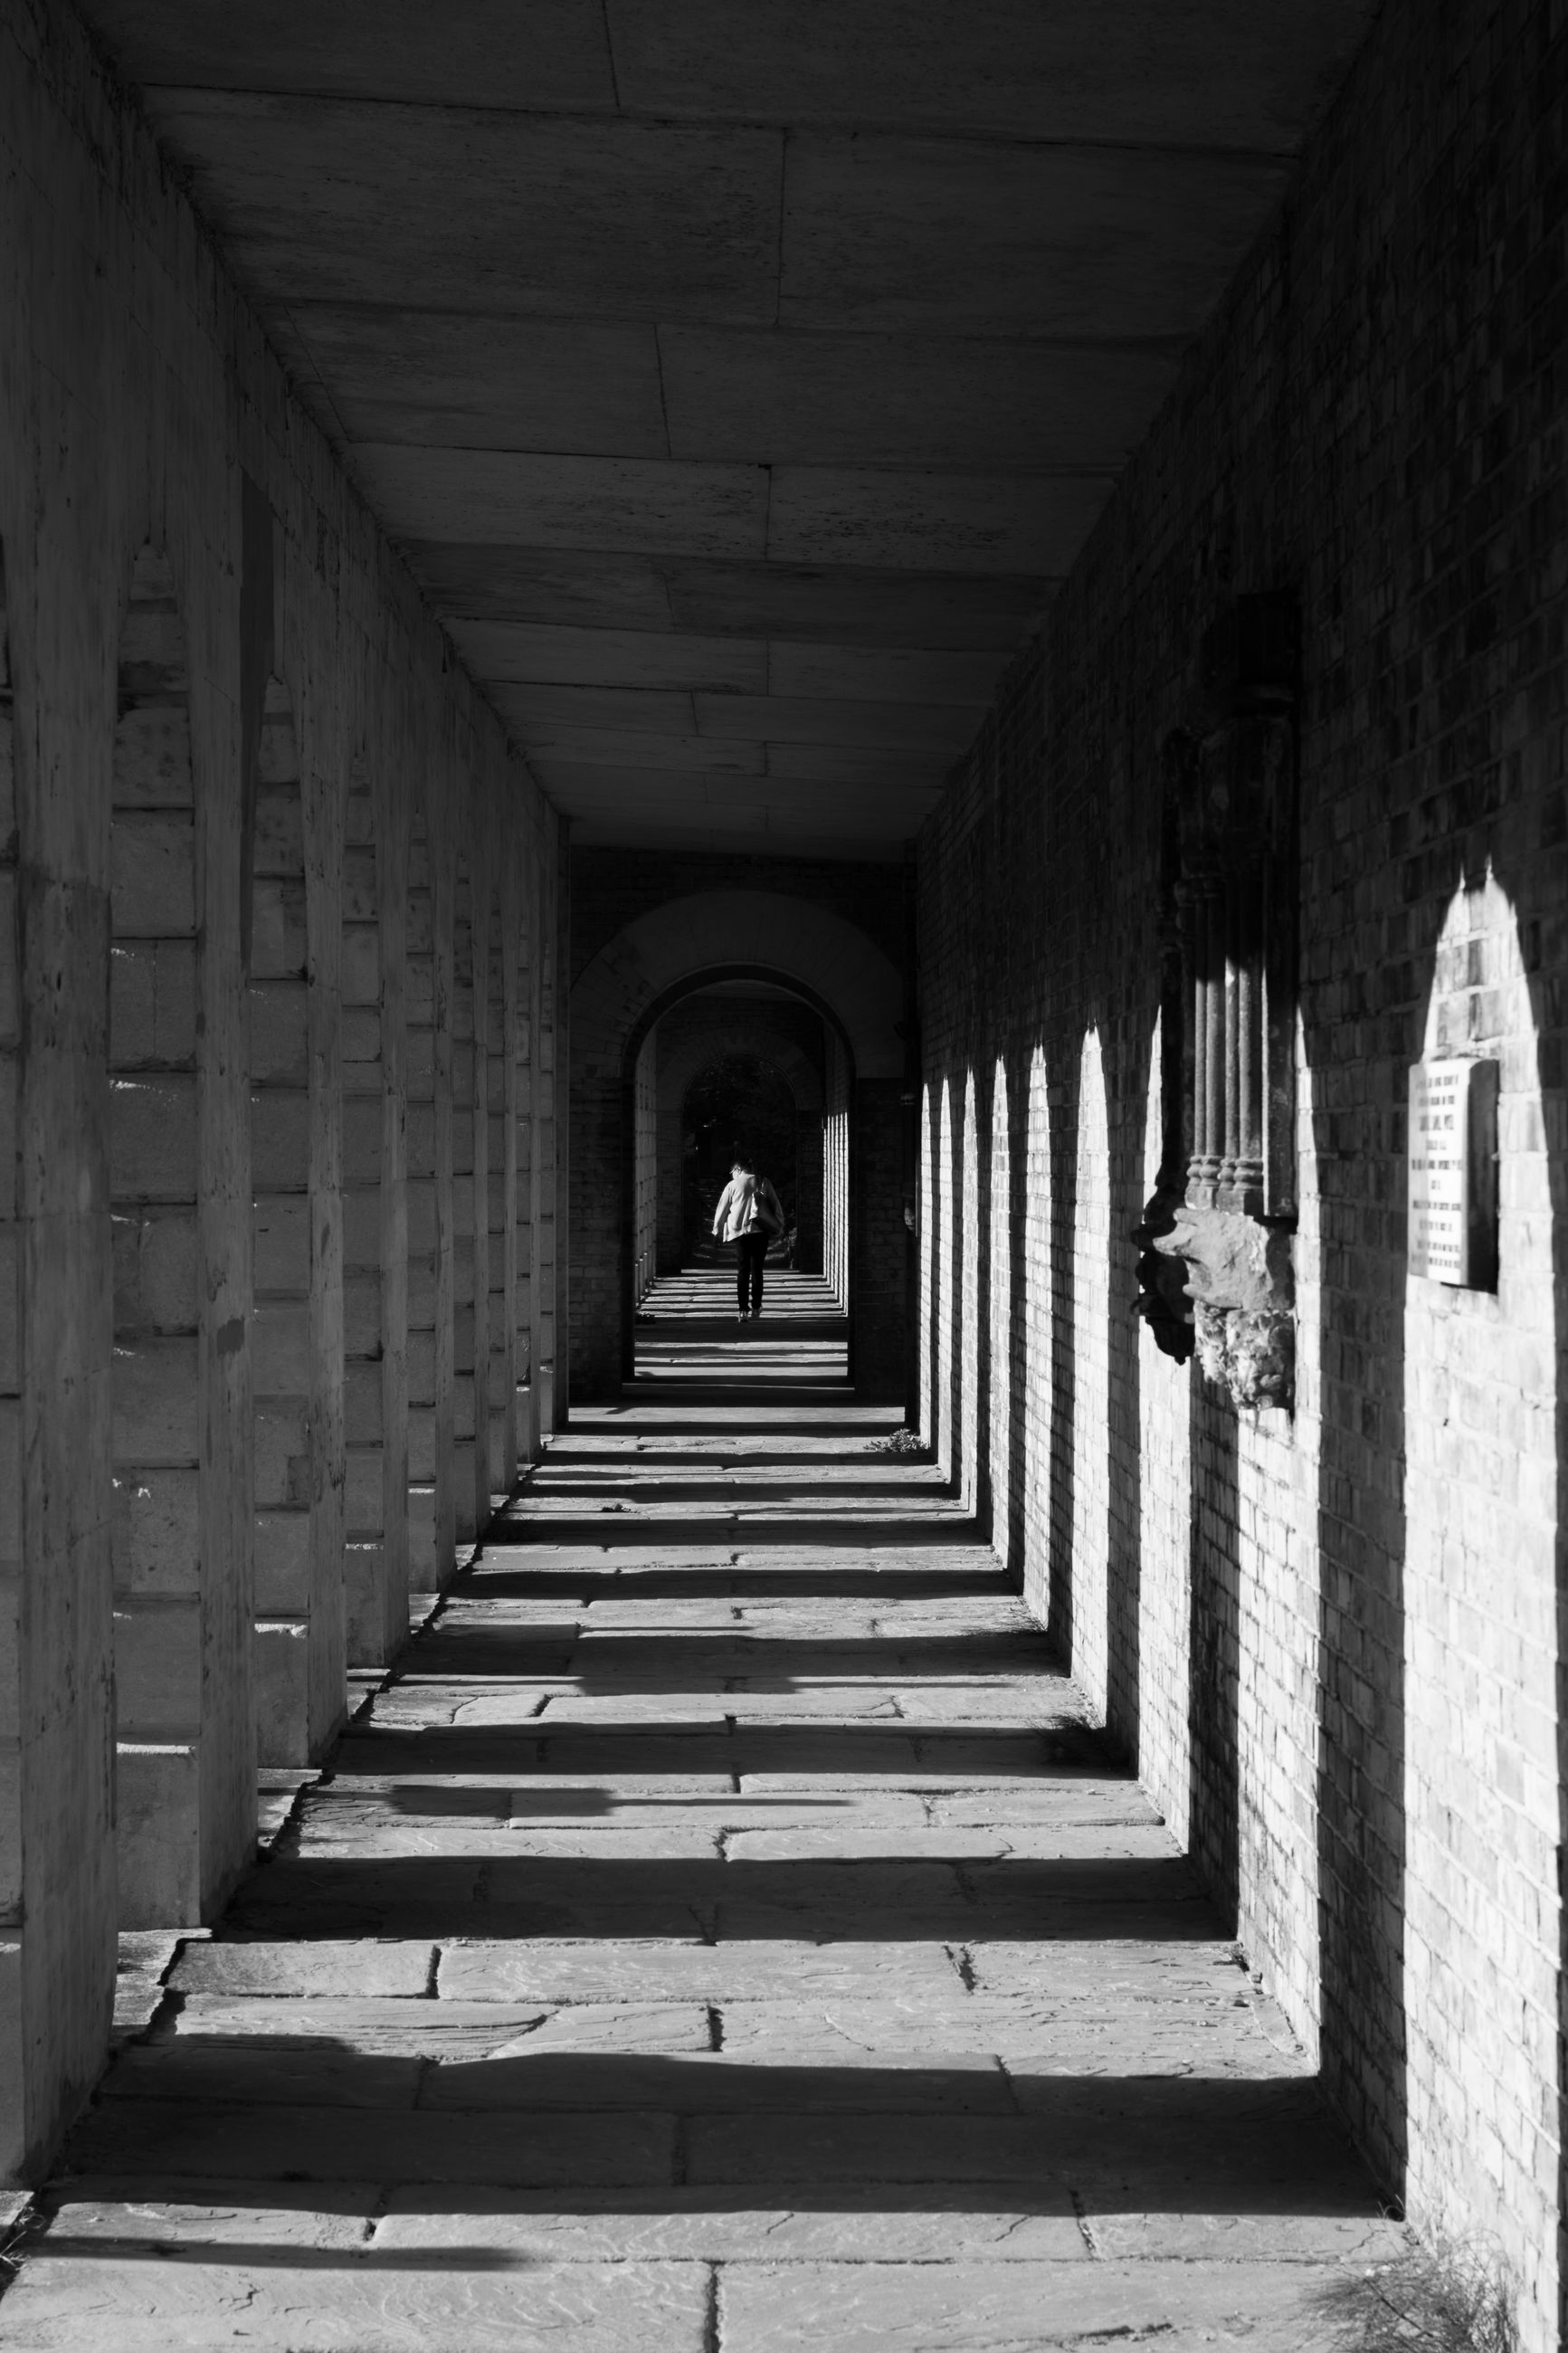 architecture, built structure, direction, the way forward, arch, day, building, arcade, one person, diminishing perspective, in a row, real people, corridor, the past, indoors, architectural column, history, rear view, lifestyles, full length, colonnade, ceiling